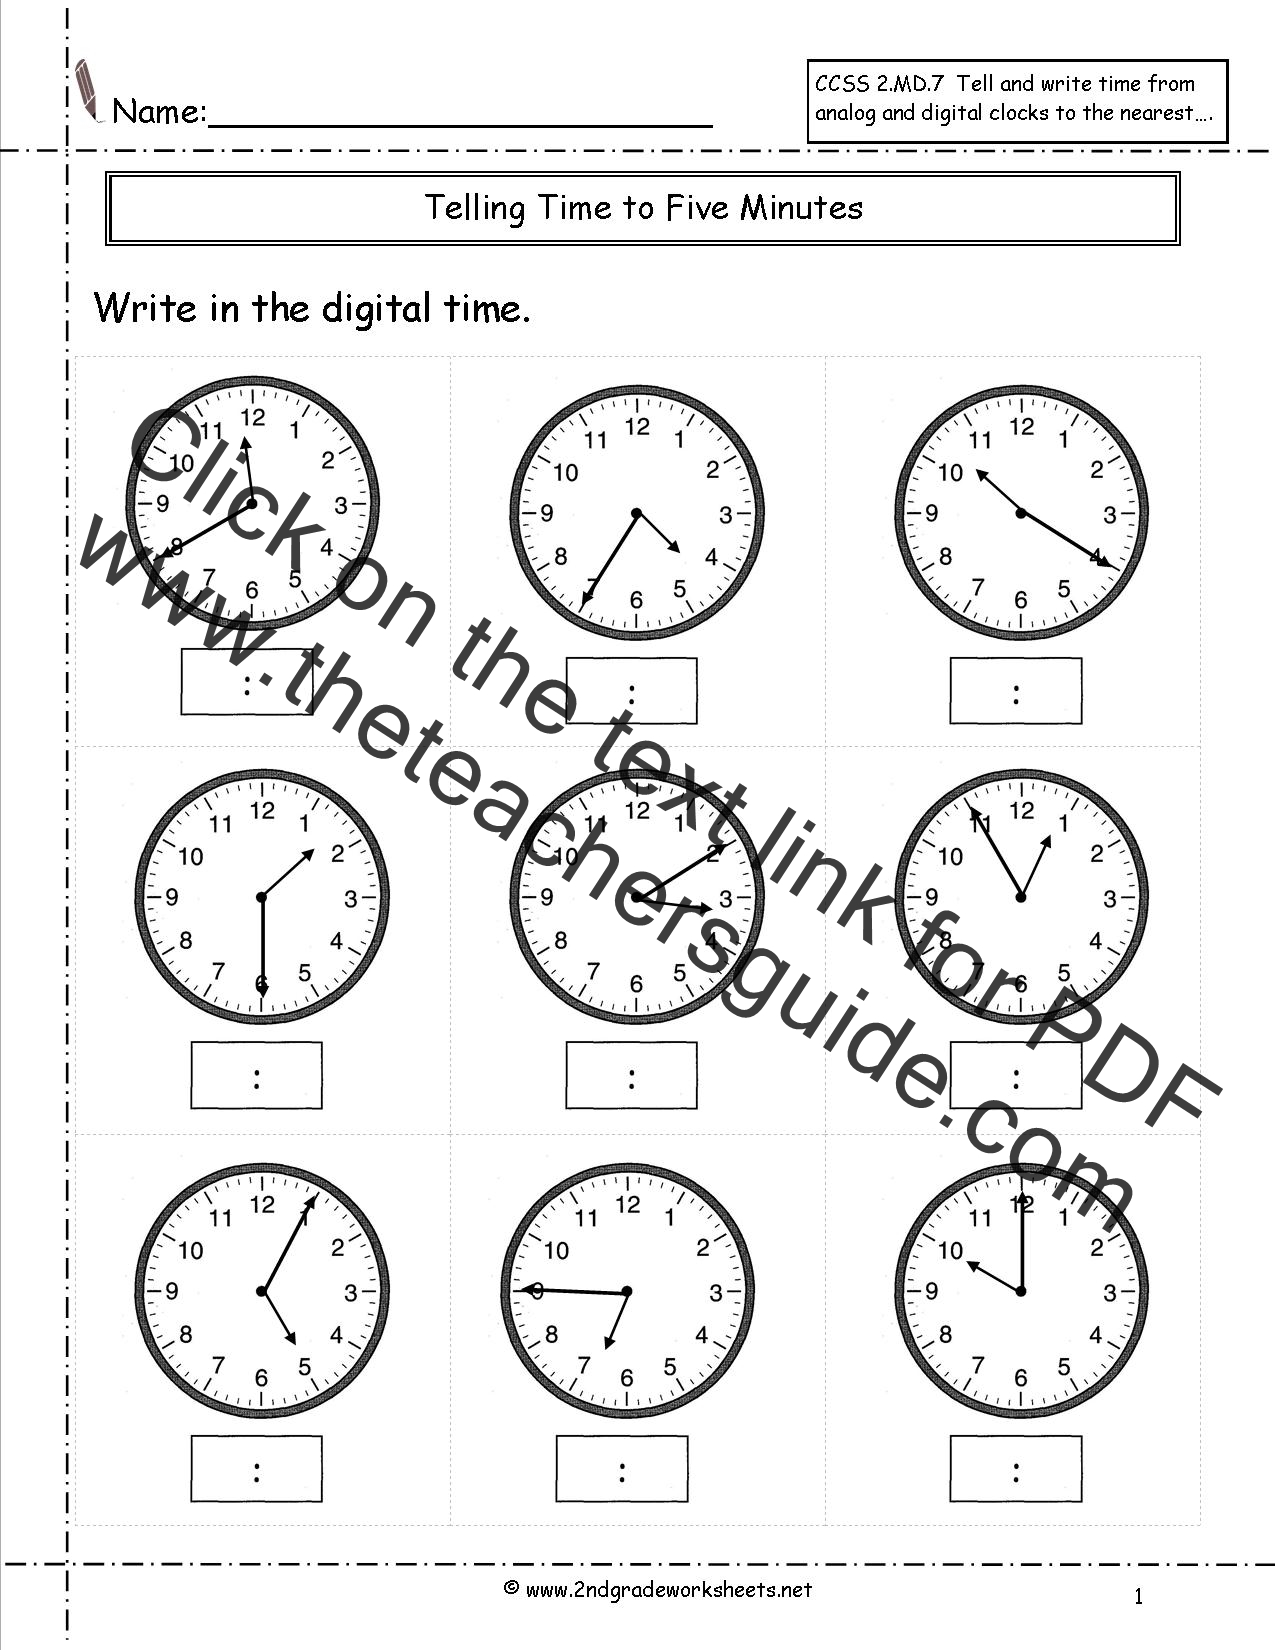 worksheet Telling Time To The Quarter Hour Worksheets ccss 2 md 7 worksheets telling time to five minutes the nearest 2